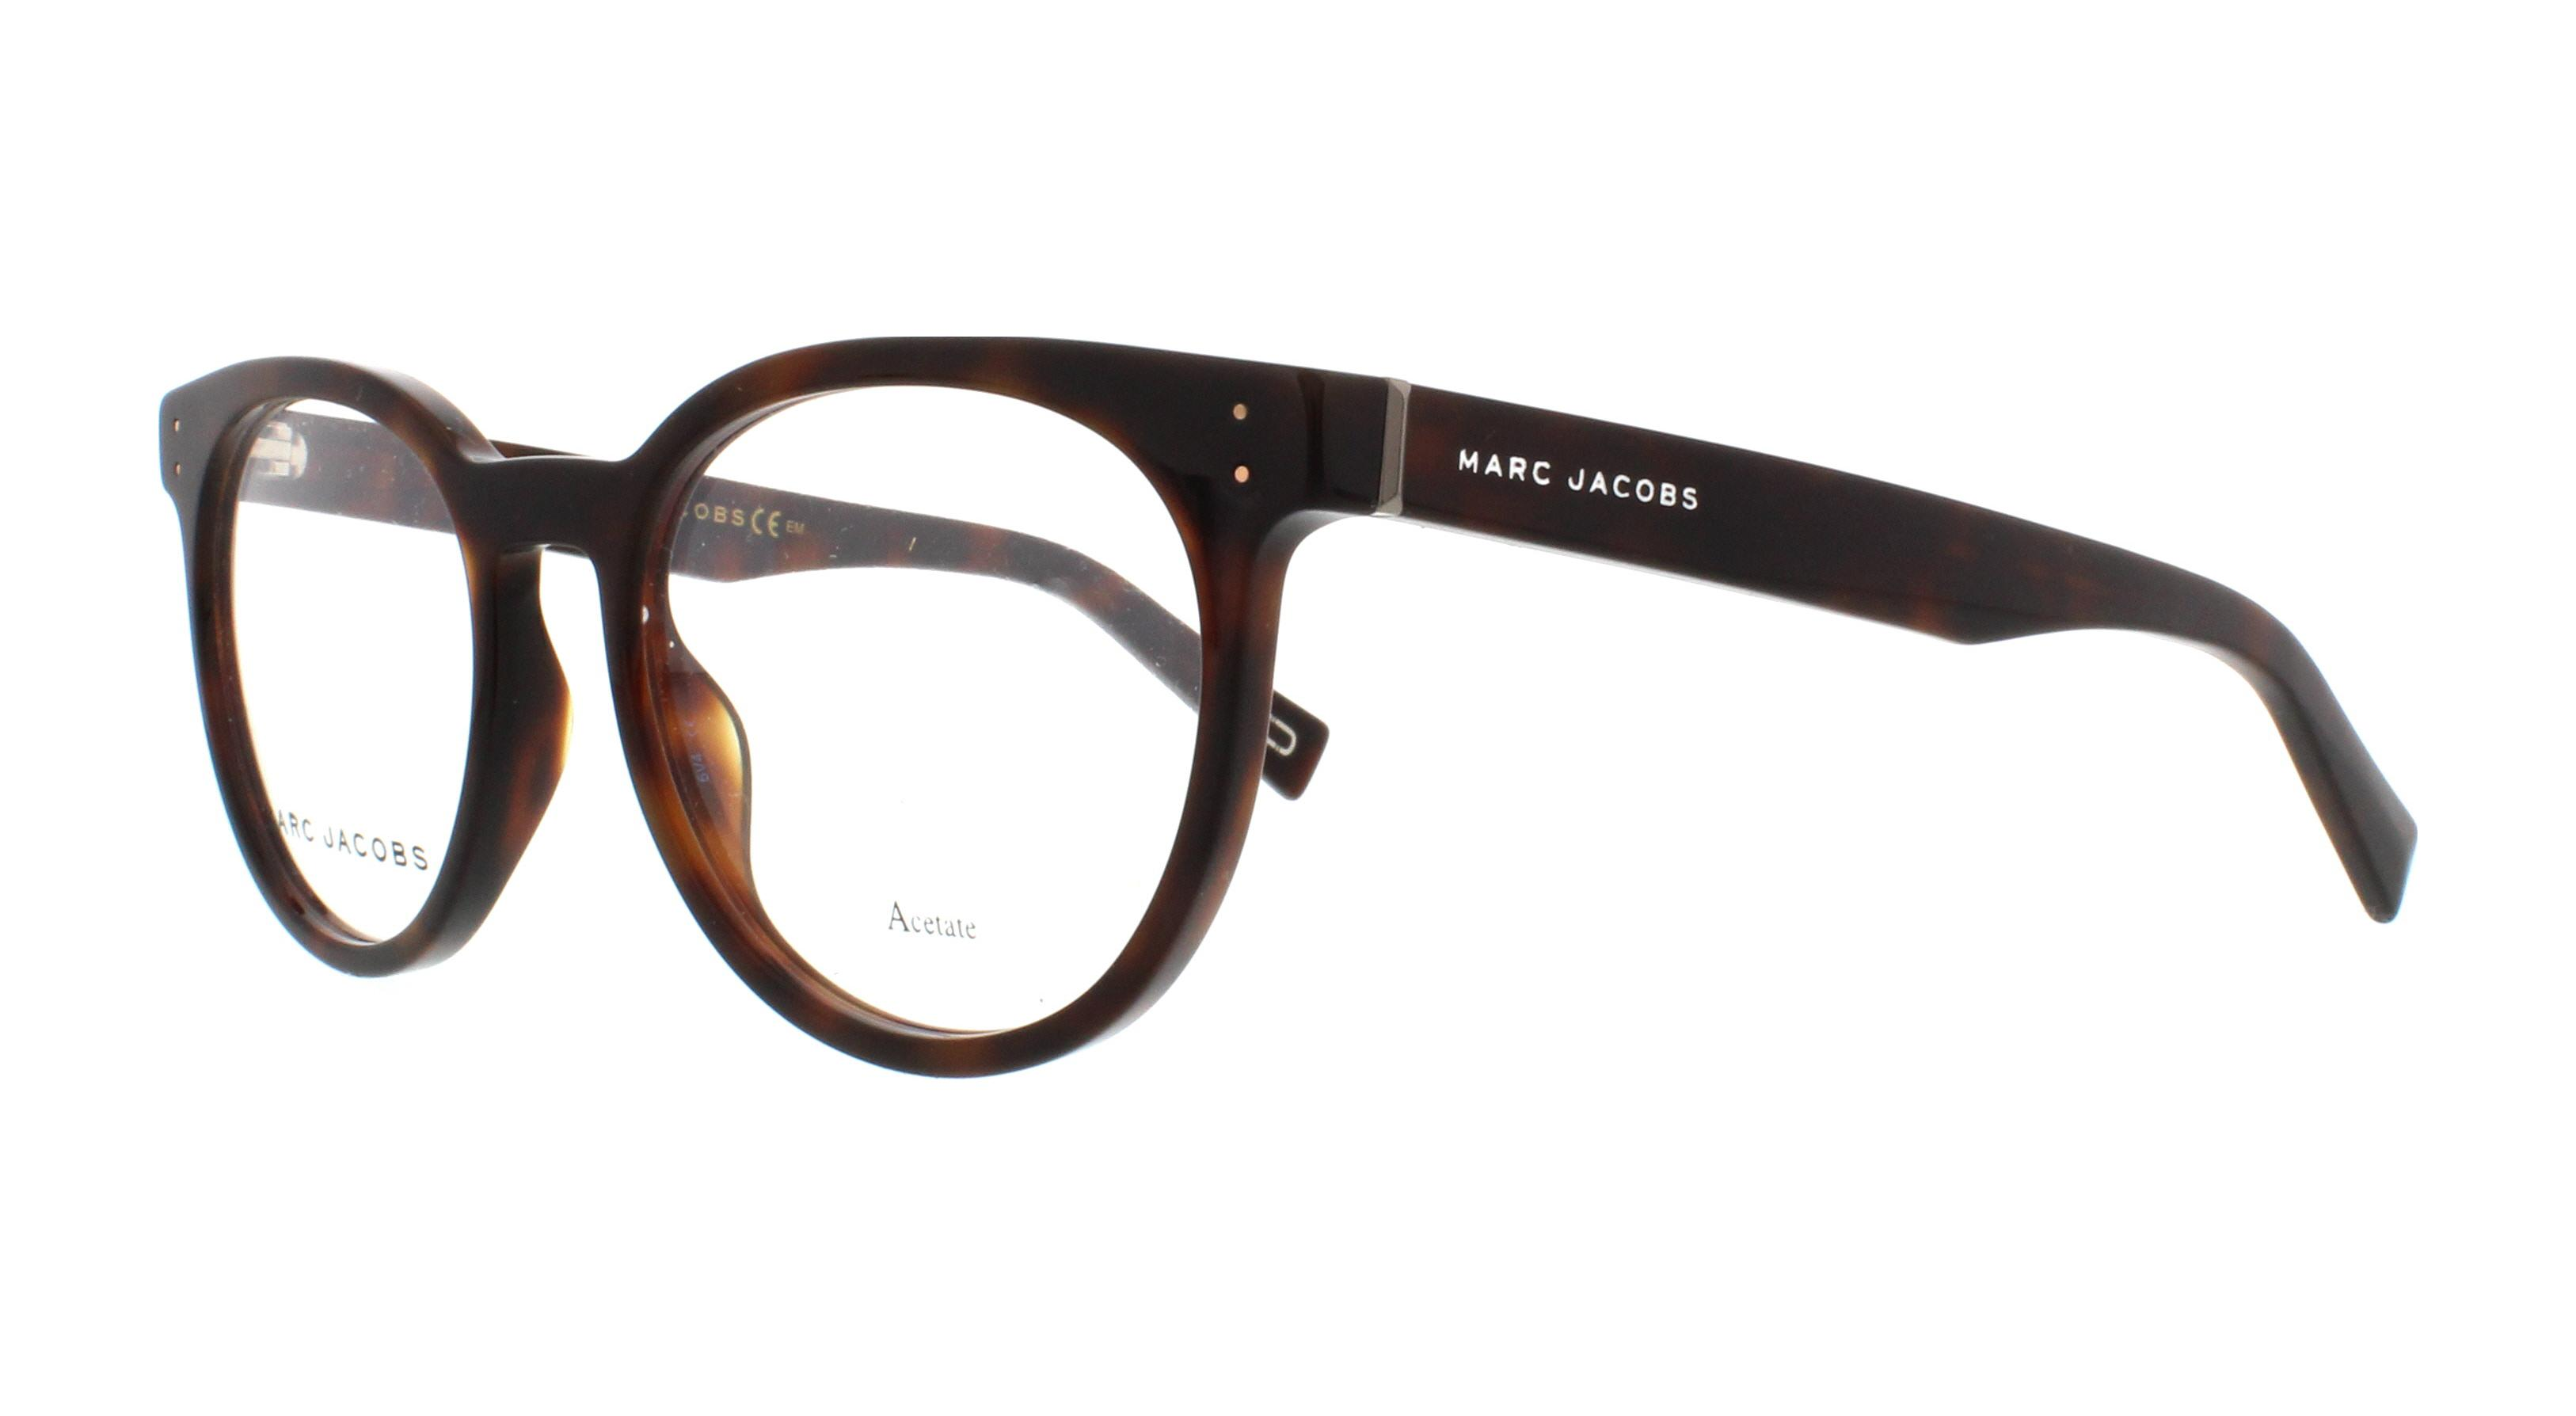 7b140059831 MARC JACOBS Eyeglasses MARC 126 0ZY1 Havana Medium 49MM 762753102898 ...